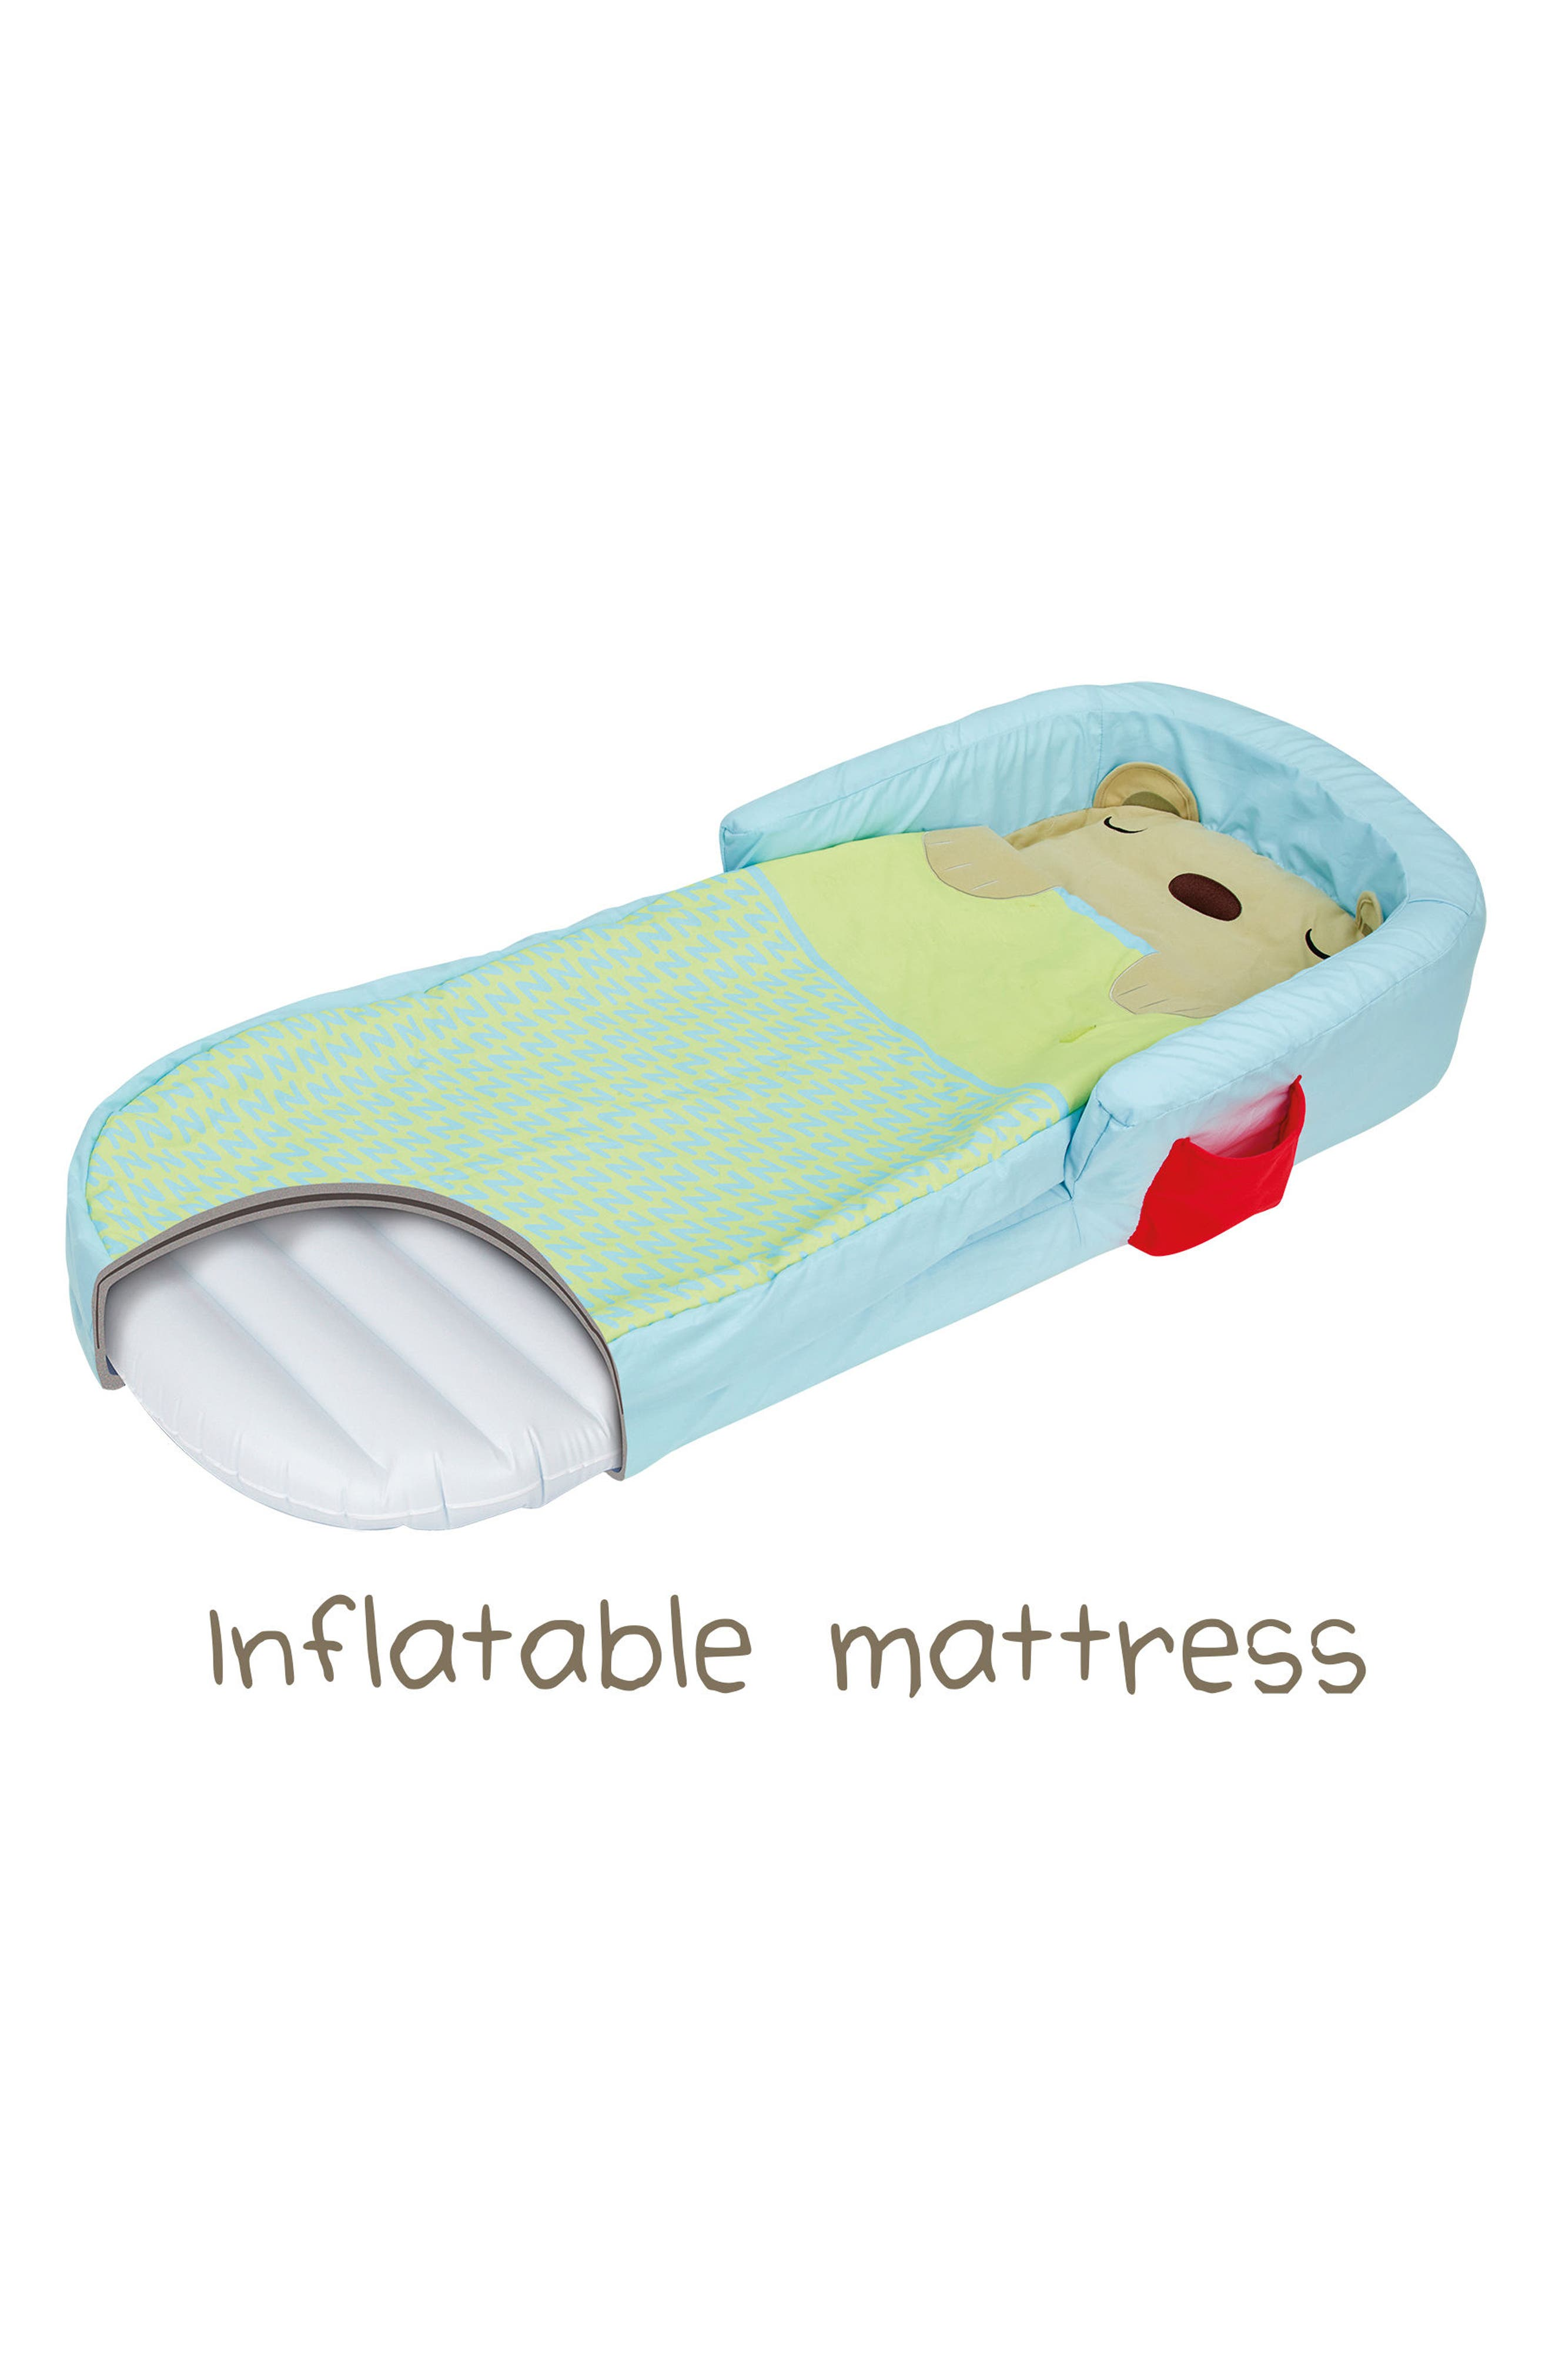 Bear Hug My First Ready Bed Inflatable Bed & Cover Set,                             Alternate thumbnail 2, color,                             400